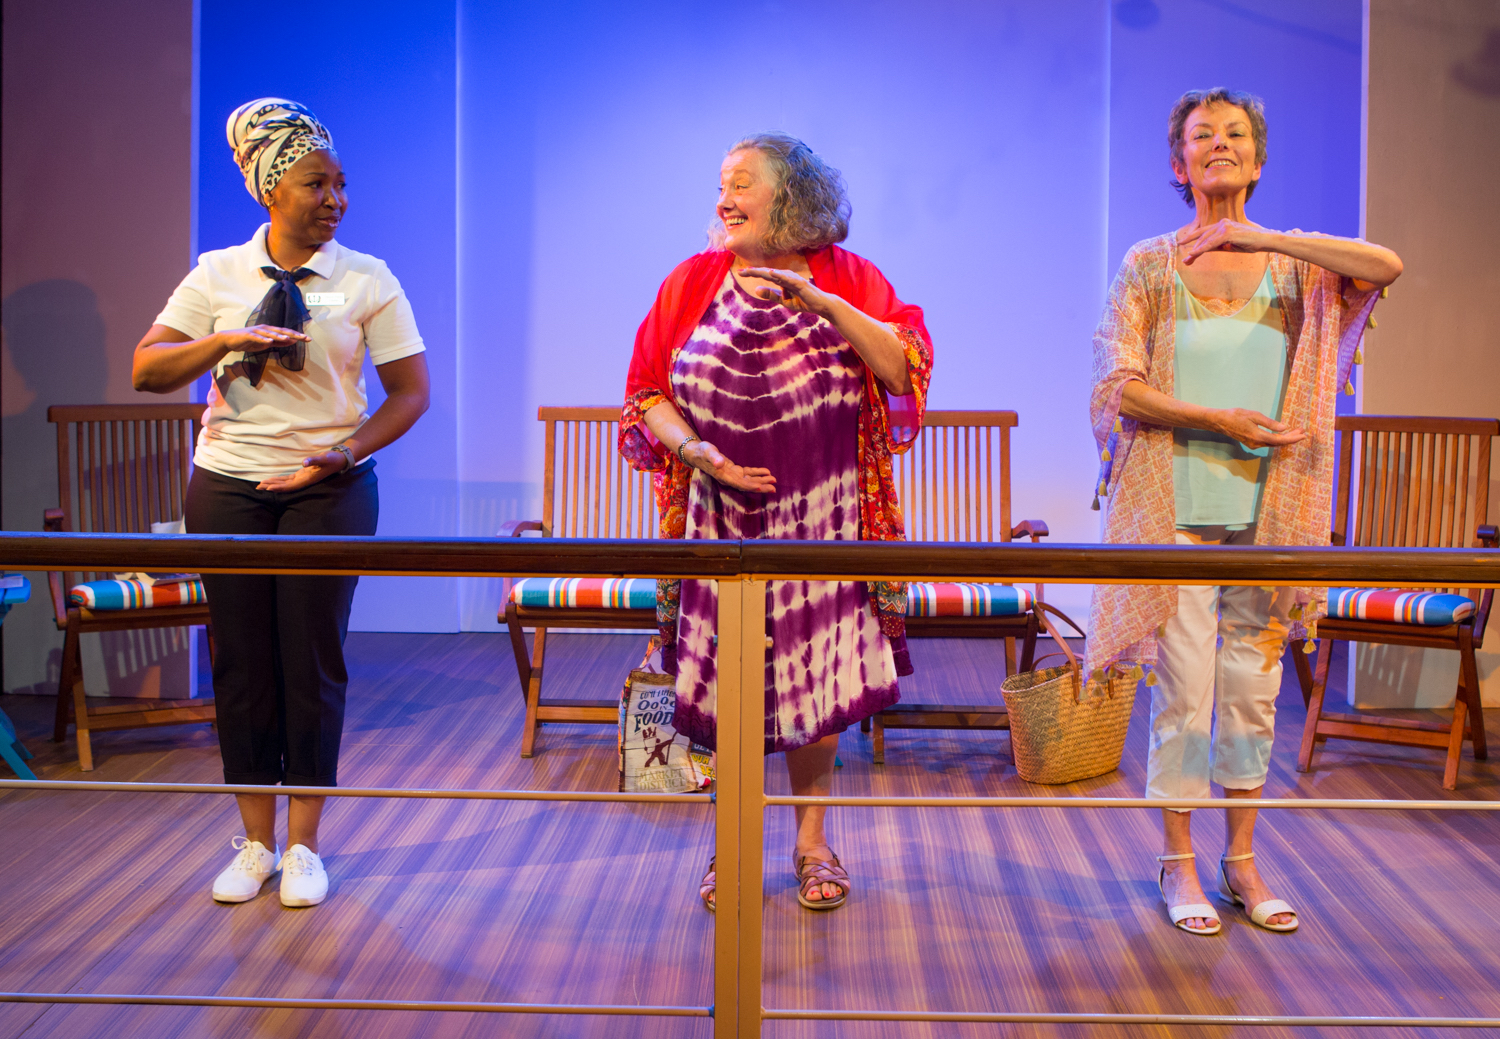 """Wendy Elizabeth Abraham, Jayne Taini and Jean Gilpin star in the Moving Arts world premiere production of """"Early Birds"""" by Dana Schwartz, directed by Elizabeth Swain and now playing at the Atwater Village Theatre. Photo: Benjamin Simpson."""